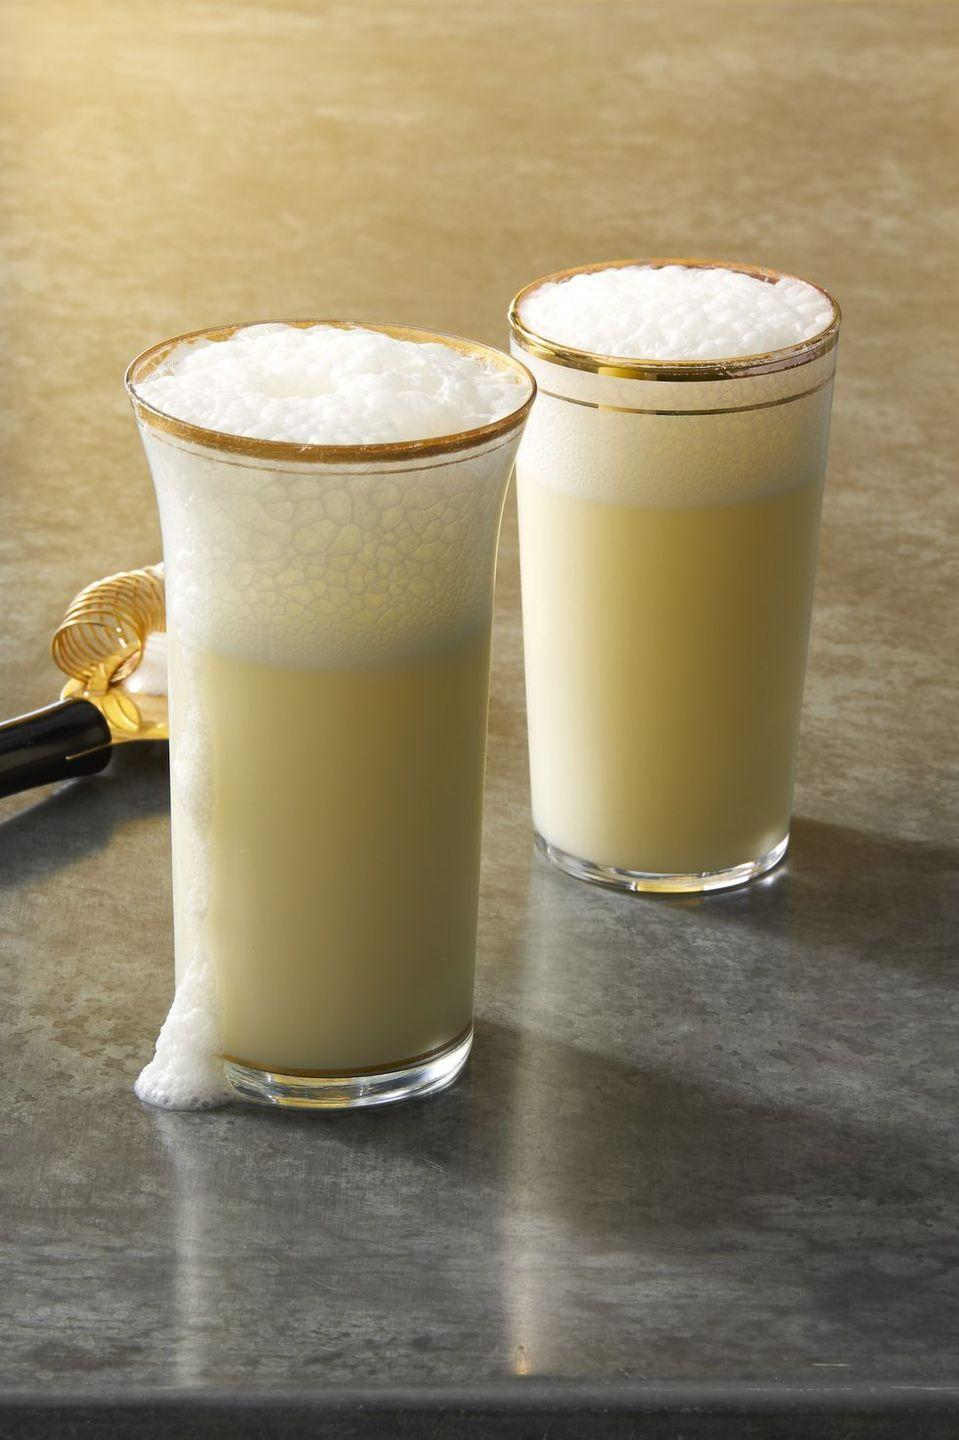 """<p>Saloon owner Carl Ramos added egg white and orange blossom water to a traditional fizz. Those additions, and vigorous long-term shaking, gives this cocktail its signature silky texture. It was so popular in Ramos's New Orleans pre-prohibition bars, especially during Mardi Gras, that he hired employees just to shake the cocktails — they would pass to the next man when they got tired. We think it's delicious even shaken for just a few minutes, but it makes for a fun party game to pass it on!</p><p><em><a href=""""https://www.goodhousekeeping.com/food-recipes/a28579576/ramos-gin-fizz-recipe/"""" rel=""""nofollow noopener"""" target=""""_blank"""" data-ylk=""""slk:Get the recipe for Ramos Gin Fizz »"""" class=""""link rapid-noclick-resp"""">Get the recipe for Ramos Gin Fizz »</a></em></p><p><a class=""""link rapid-noclick-resp"""" href=""""https://www.amazon.com/OXO-1058018-SteeL-Cocktail-Shaker/dp/B0001YH13E/?tag=syn-yahoo-20&ascsubtag=%5Bartid%7C10063.g.34858693%5Bsrc%7Cyahoo-us"""" rel=""""nofollow noopener"""" target=""""_blank"""" data-ylk=""""slk:Shop Cocktail Shakers"""">Shop Cocktail Shakers</a></p>"""